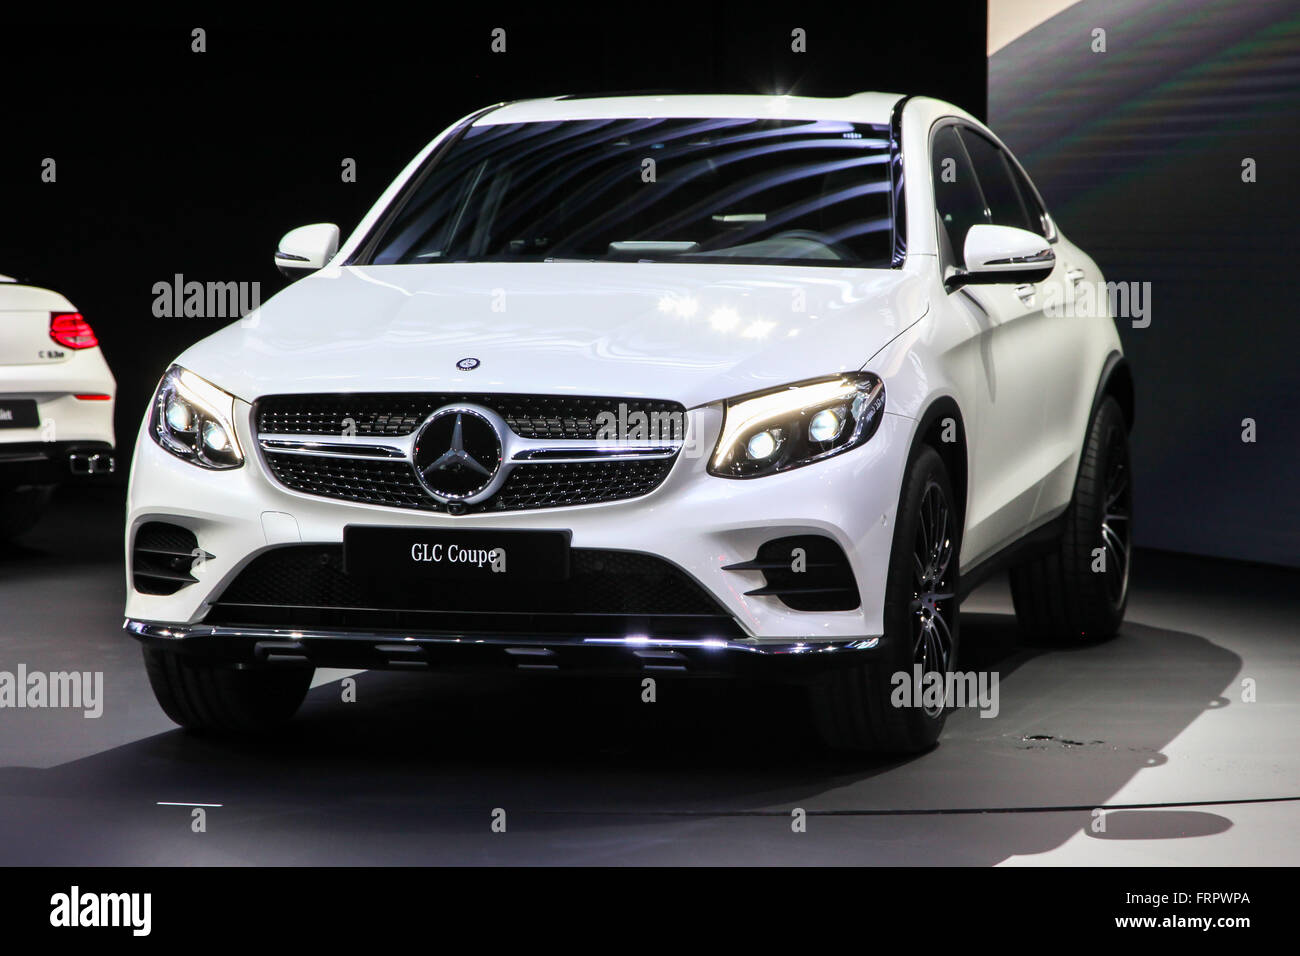 Manhattan, New York, USA. 23rd Mar, 2016.A Mercedes GLC Coupe shown at the New York International Auto Show 2016, - Stock Image